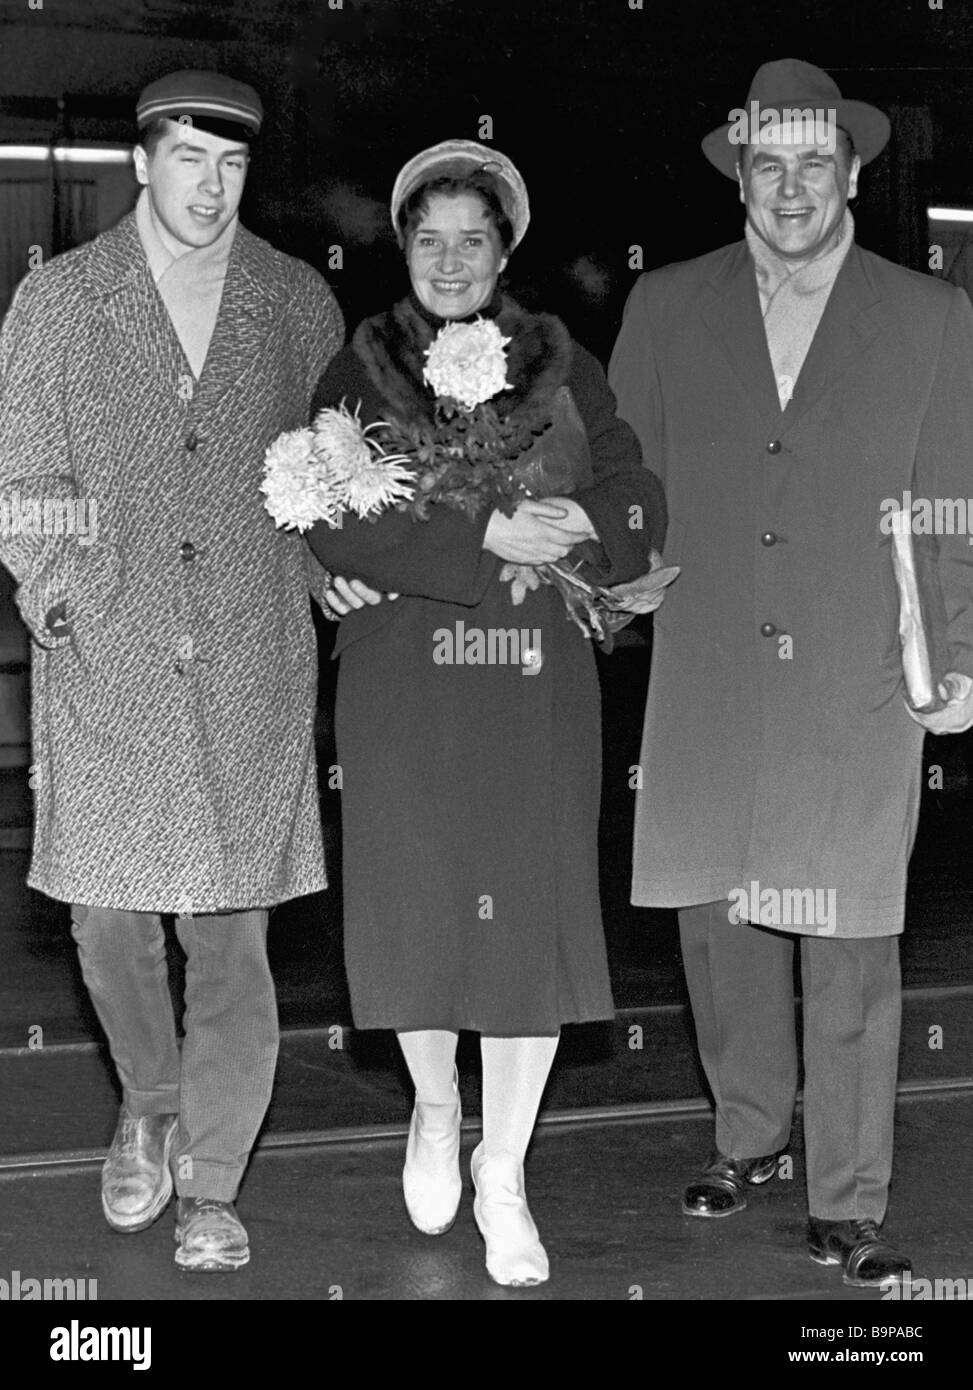 Celebrated Soviet singer Georg Ots right with wife centre and elder son left - Stock Image